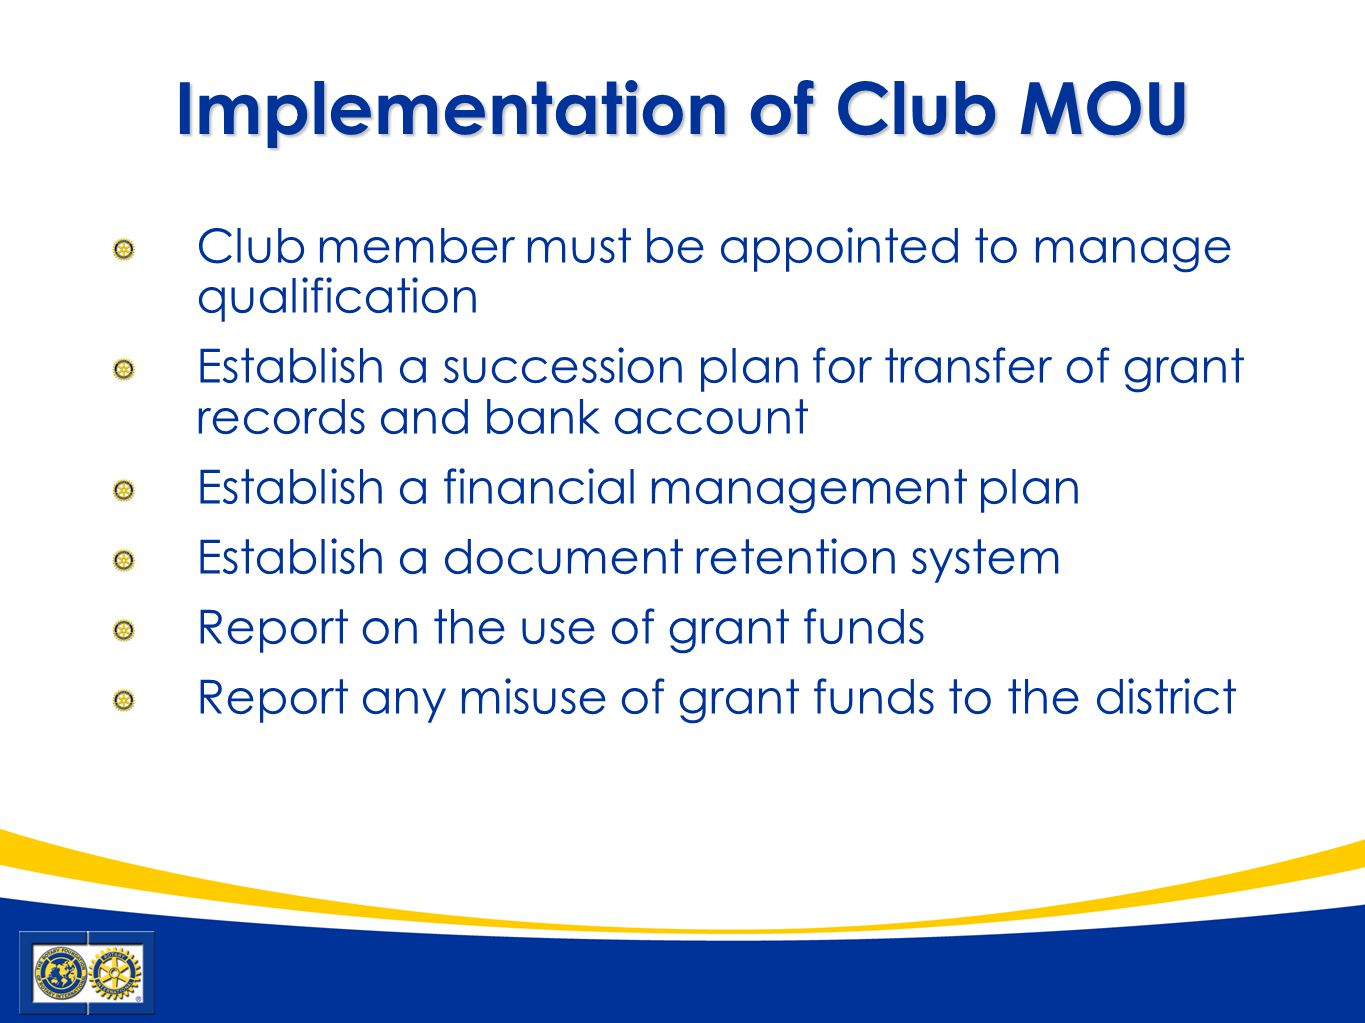 Implementation of Club MOU Club member must be appointed to manage qualification Establish a succession plan for transfer of grant records and bank account Establish a financial management plan Establish a document retention system Report on the use of grant funds Report any misuse of grant funds to the district